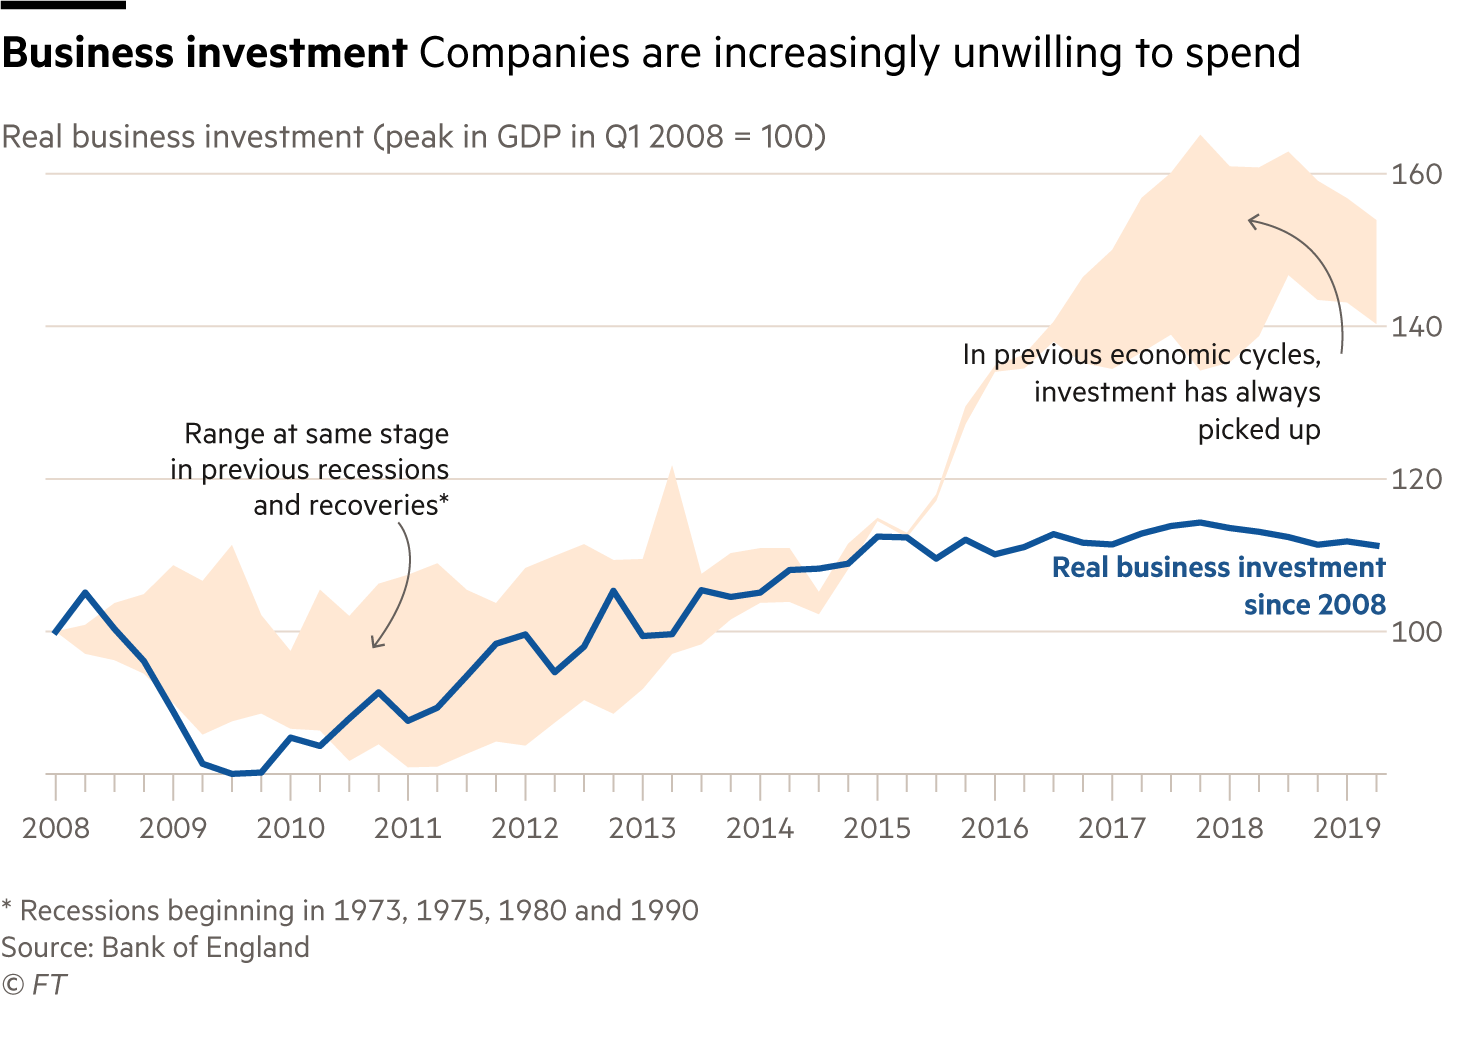 Chart showing unusual weakness in UK business investment